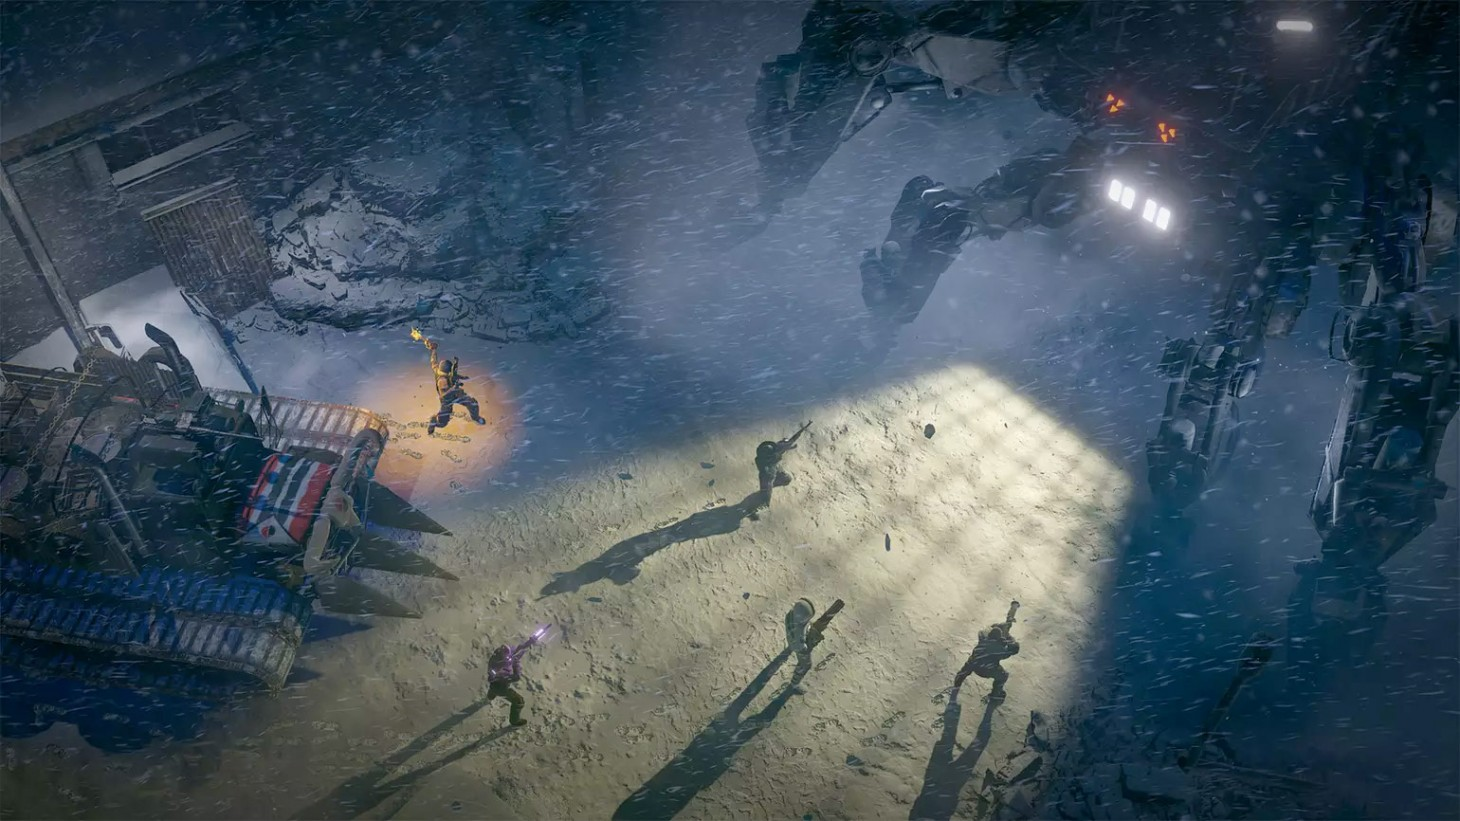 Why Fallout Fans Should Be Excited For Wasteland 3 - Game Informer